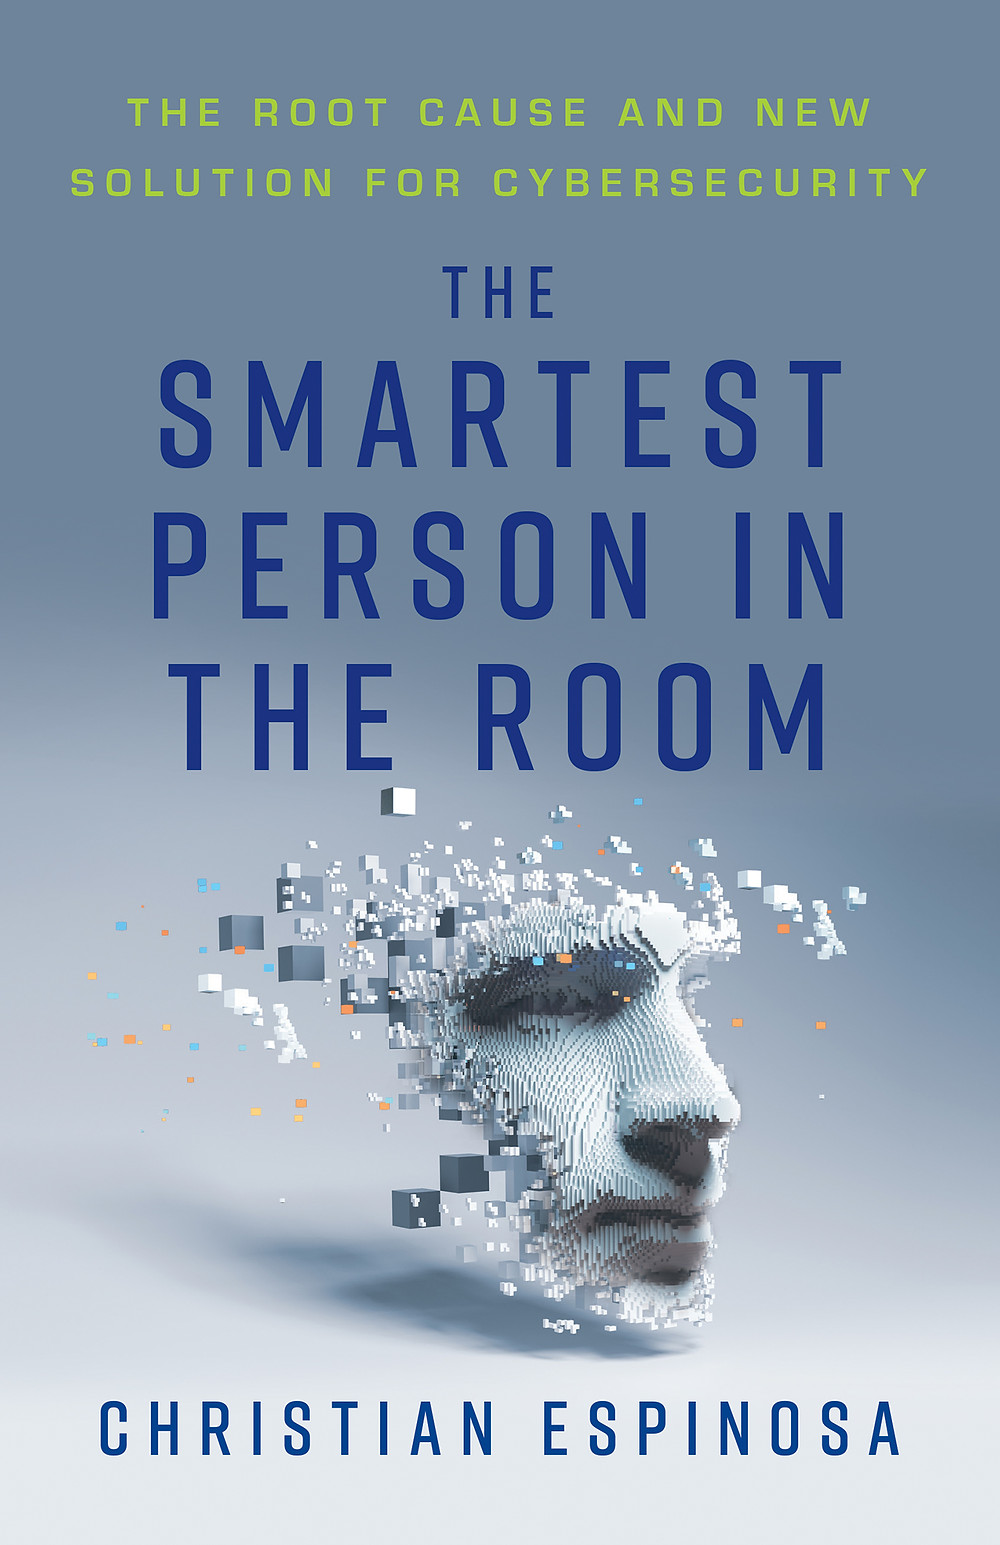 The Smartest Person in the Room: The Root Cause and New Solution for Cybersecurity by Christian Espinosa, Amazon Bestseller and must-read in nonfiction.